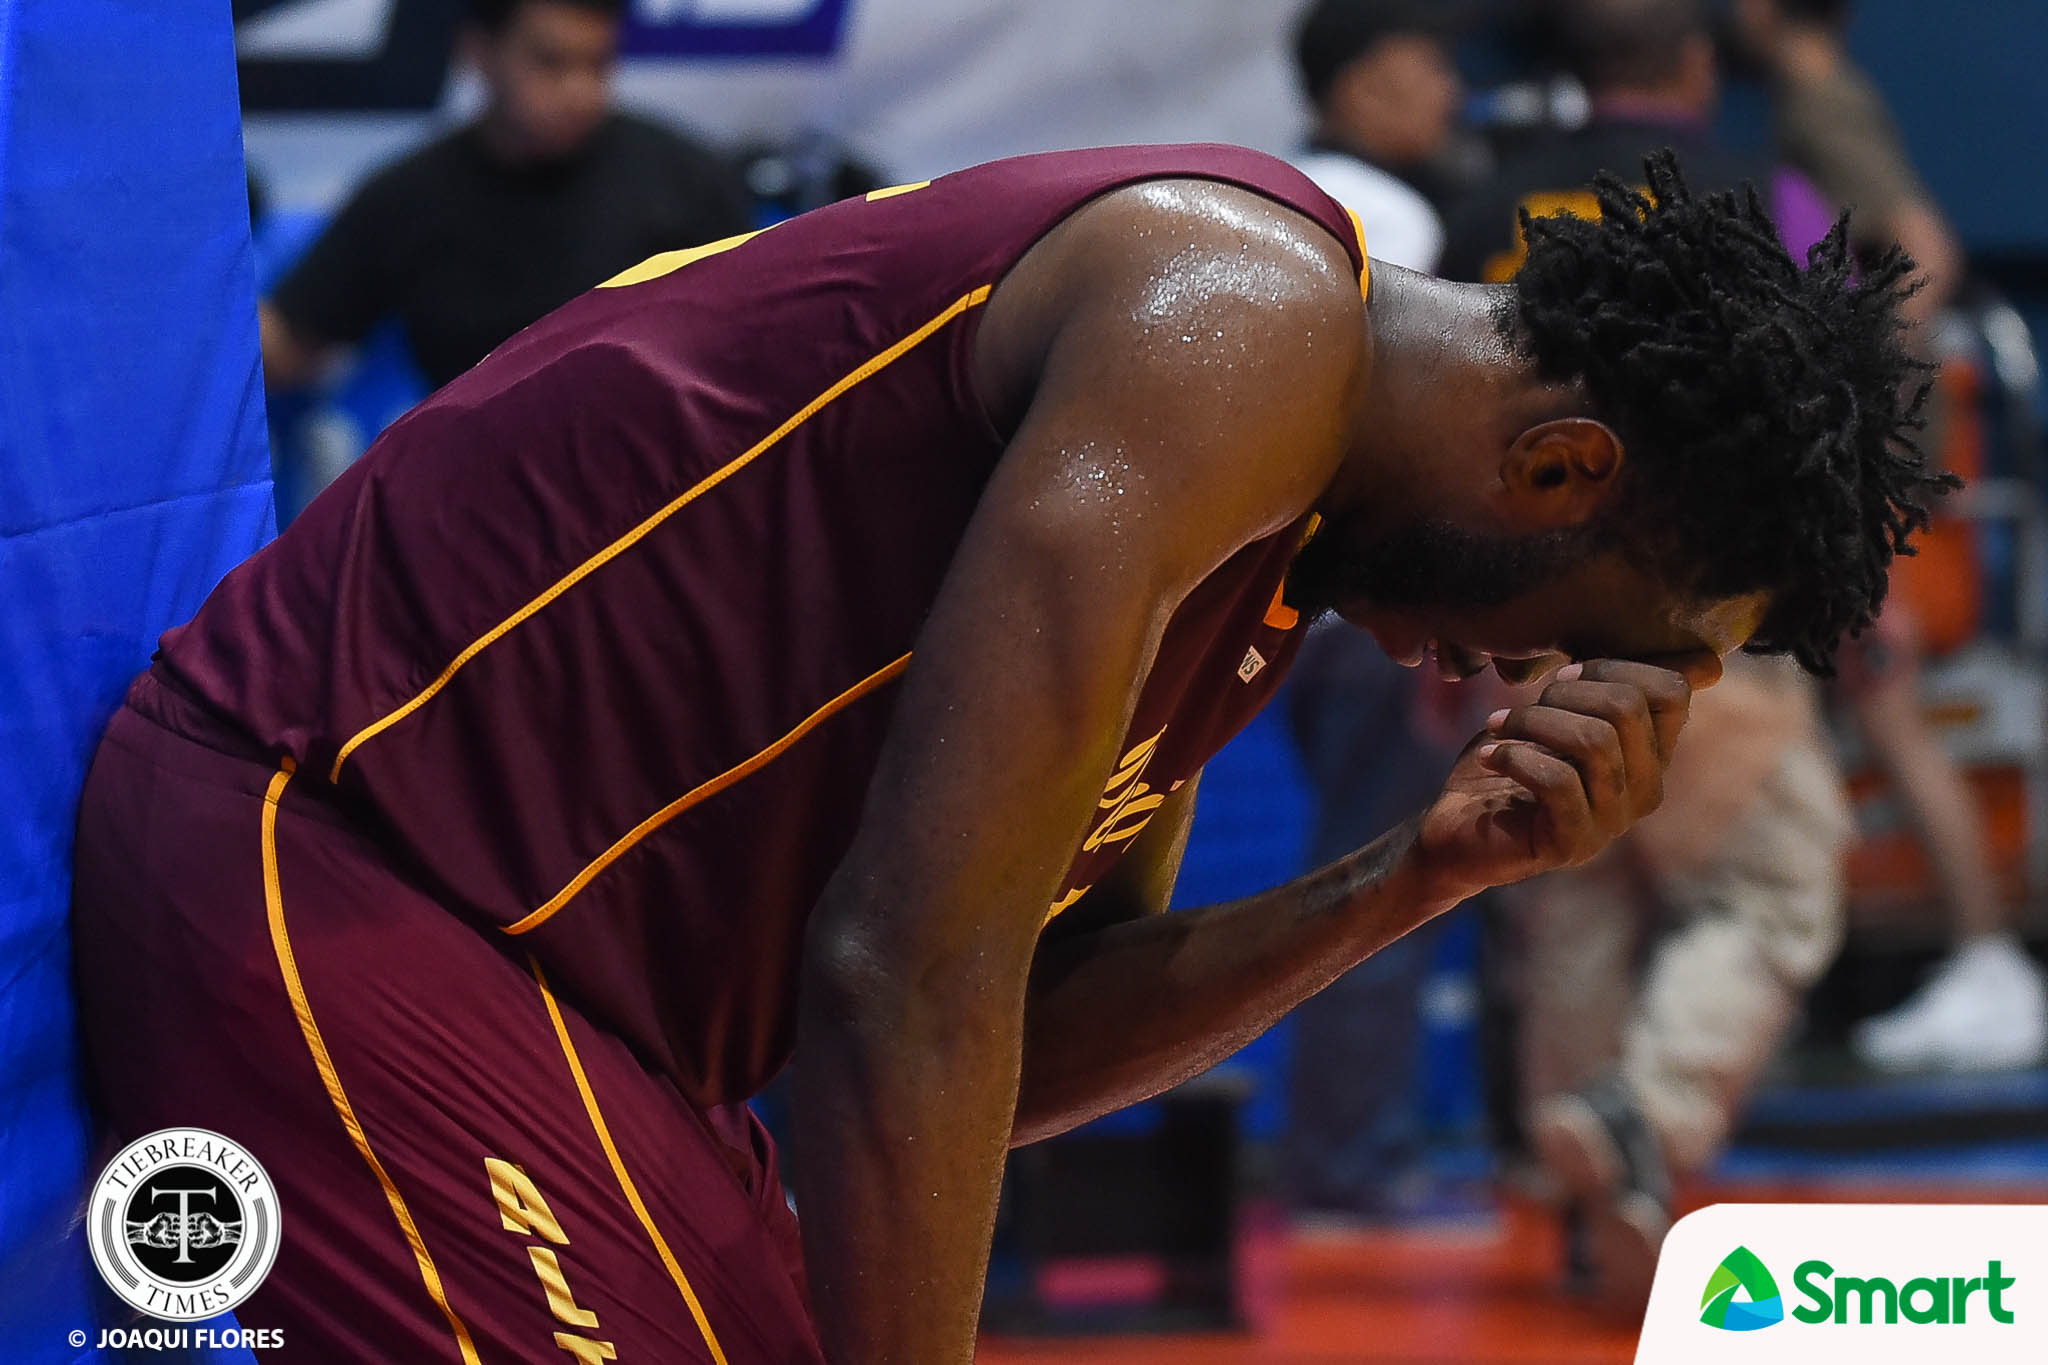 Tiebreaker Times Perpetualites for Life: Bright Akhuetie says Prince Eze deserves MVP plum Basketball NCAA News UAAP UP UPHSD  UP Men's Basketball UAAP Season 81 Men's Basketball UAAP Season 81 Prince Eze Perpetual Seniors Basketball NCAA Season 94 Seniors Basketball NCAA Season 94 Bright Akhuetie